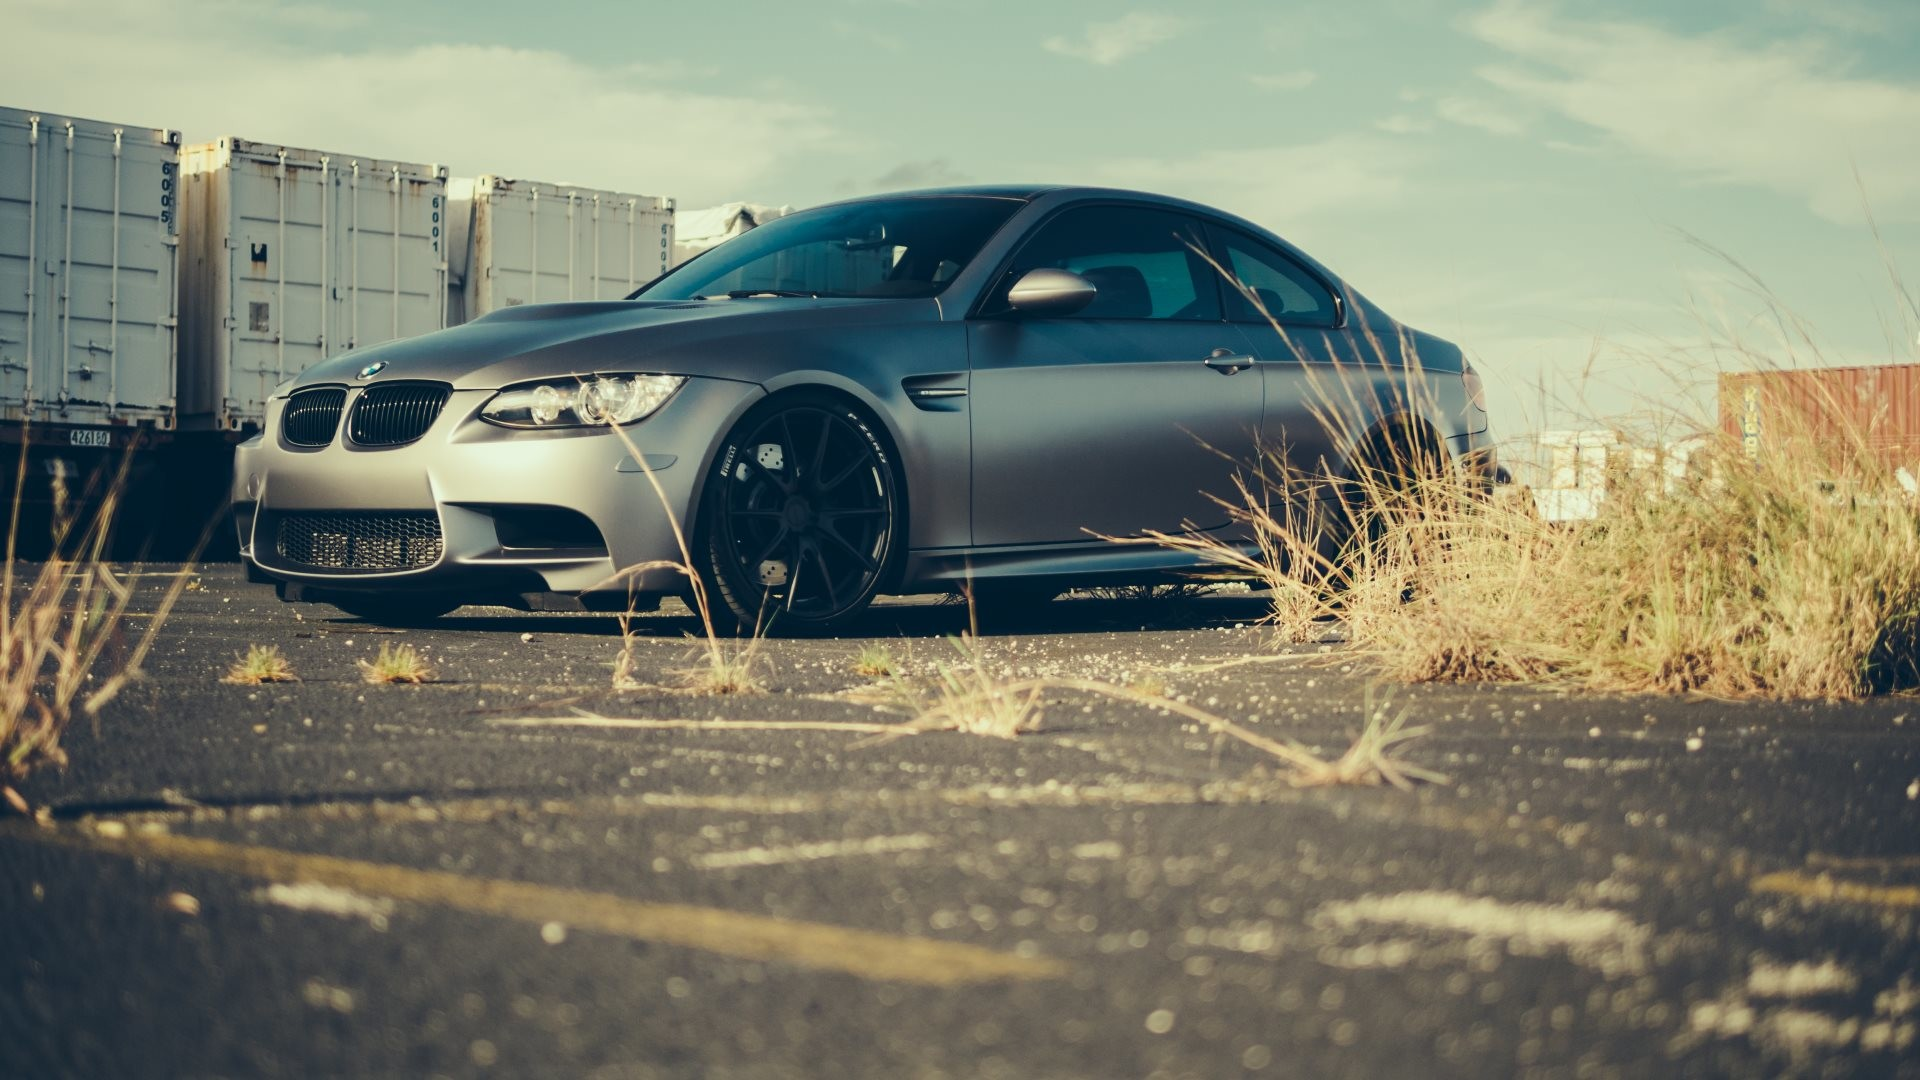 1920x1080 New picture with a hot BMW M coupe car from portfolio of professional  photographer - William Stern - is listed below with his permission ·  Download the ...